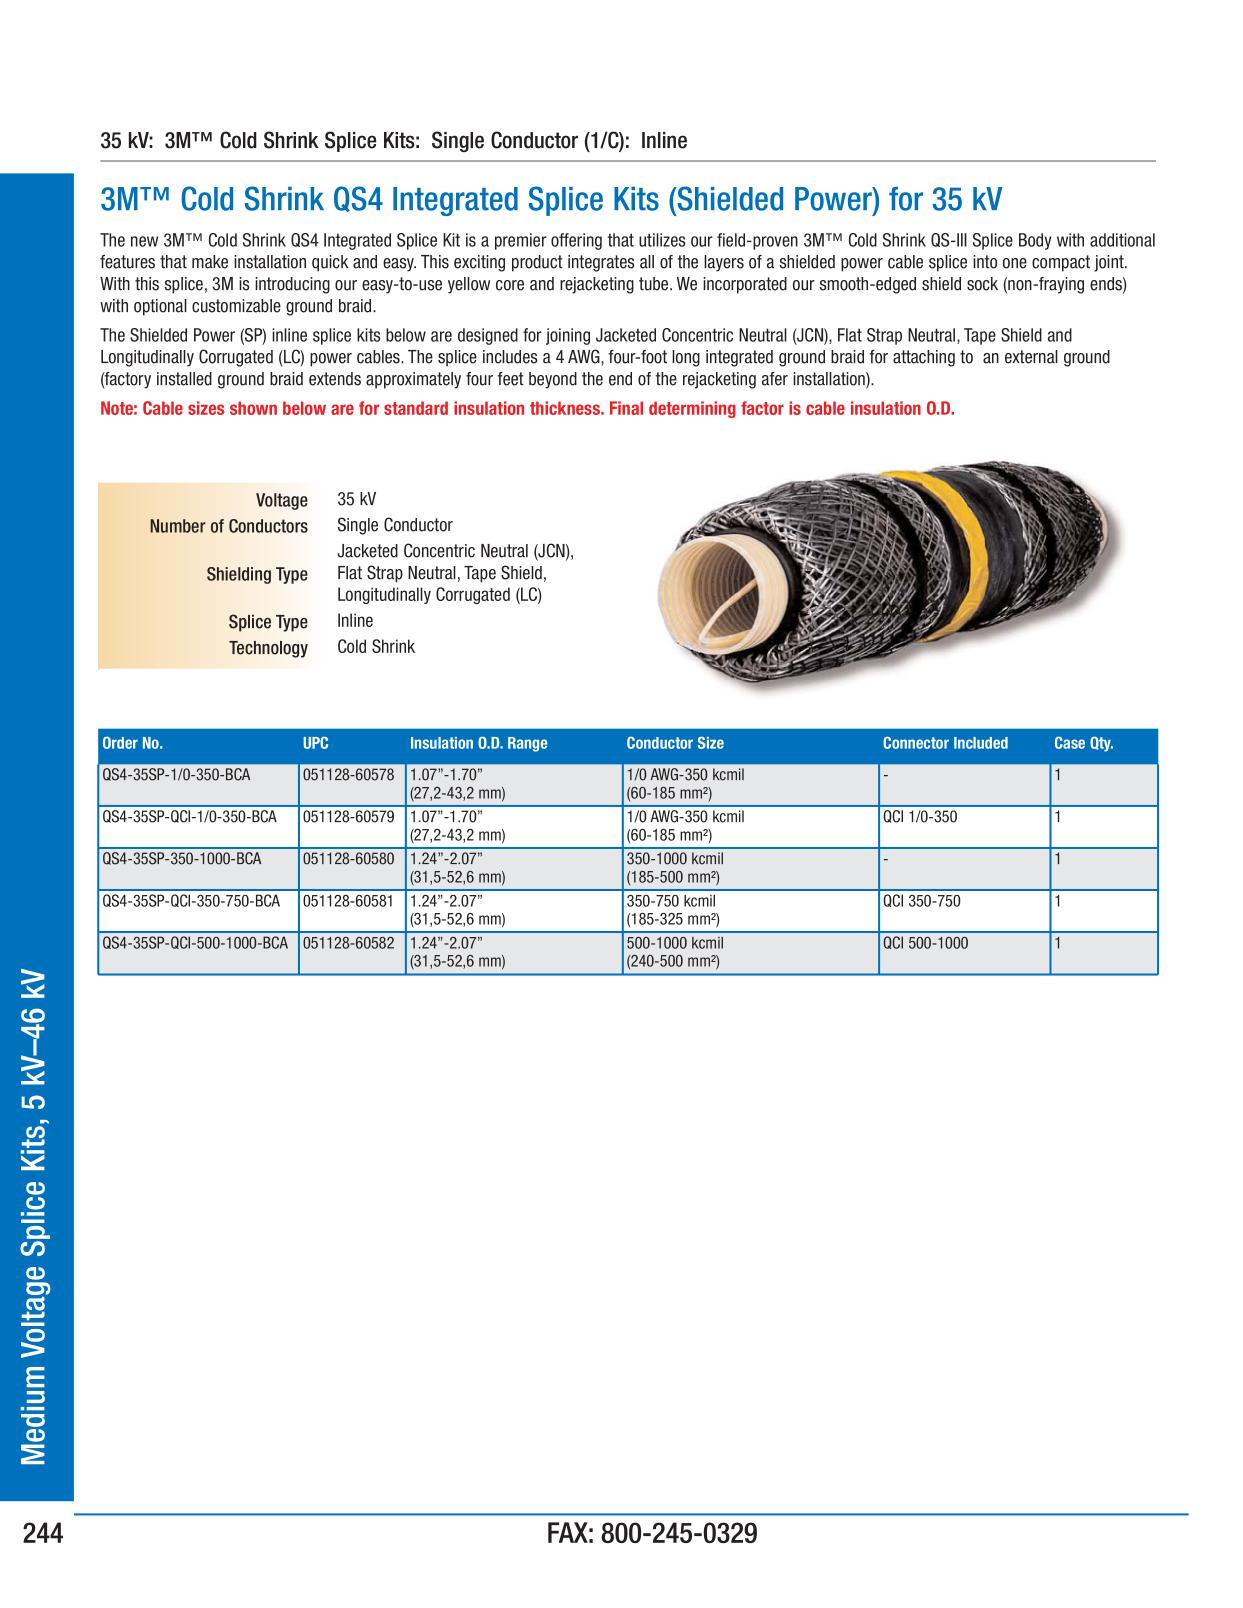 3m electrical products page 246 medium voltage splice kits 5 kv catalogs greentooth Choice Image